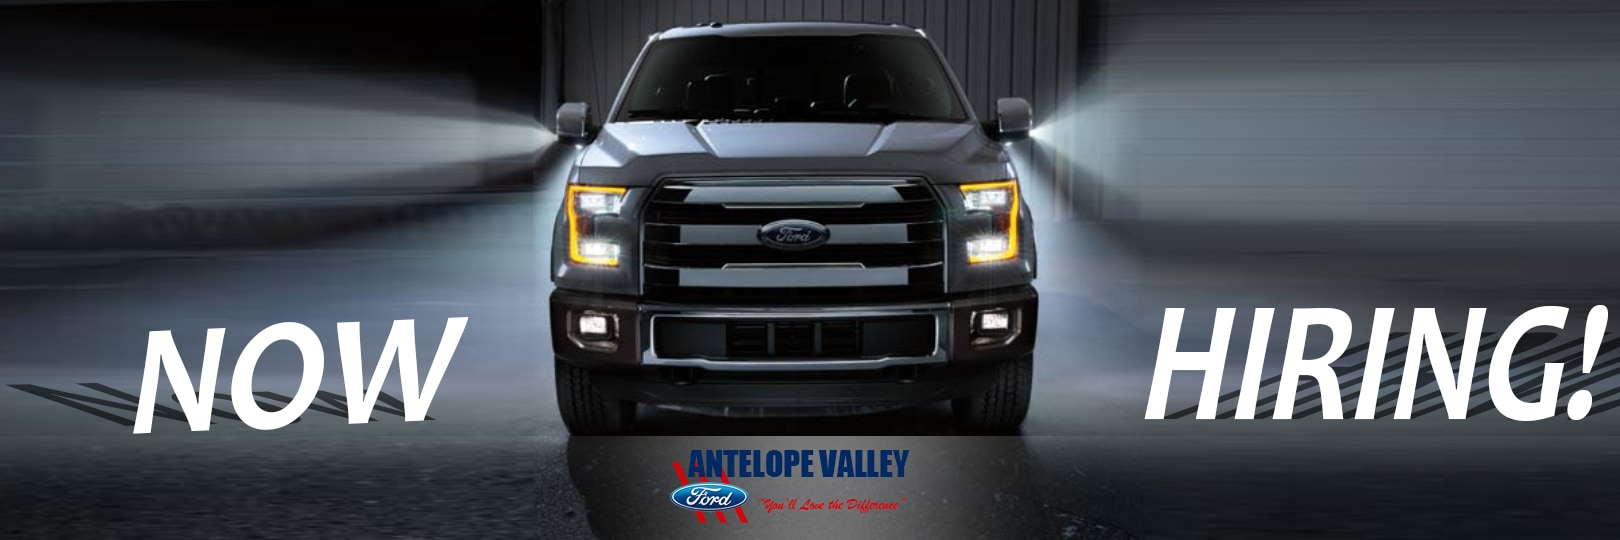 Antelope Valley Ford is now hiring for available jobs near Palmdale